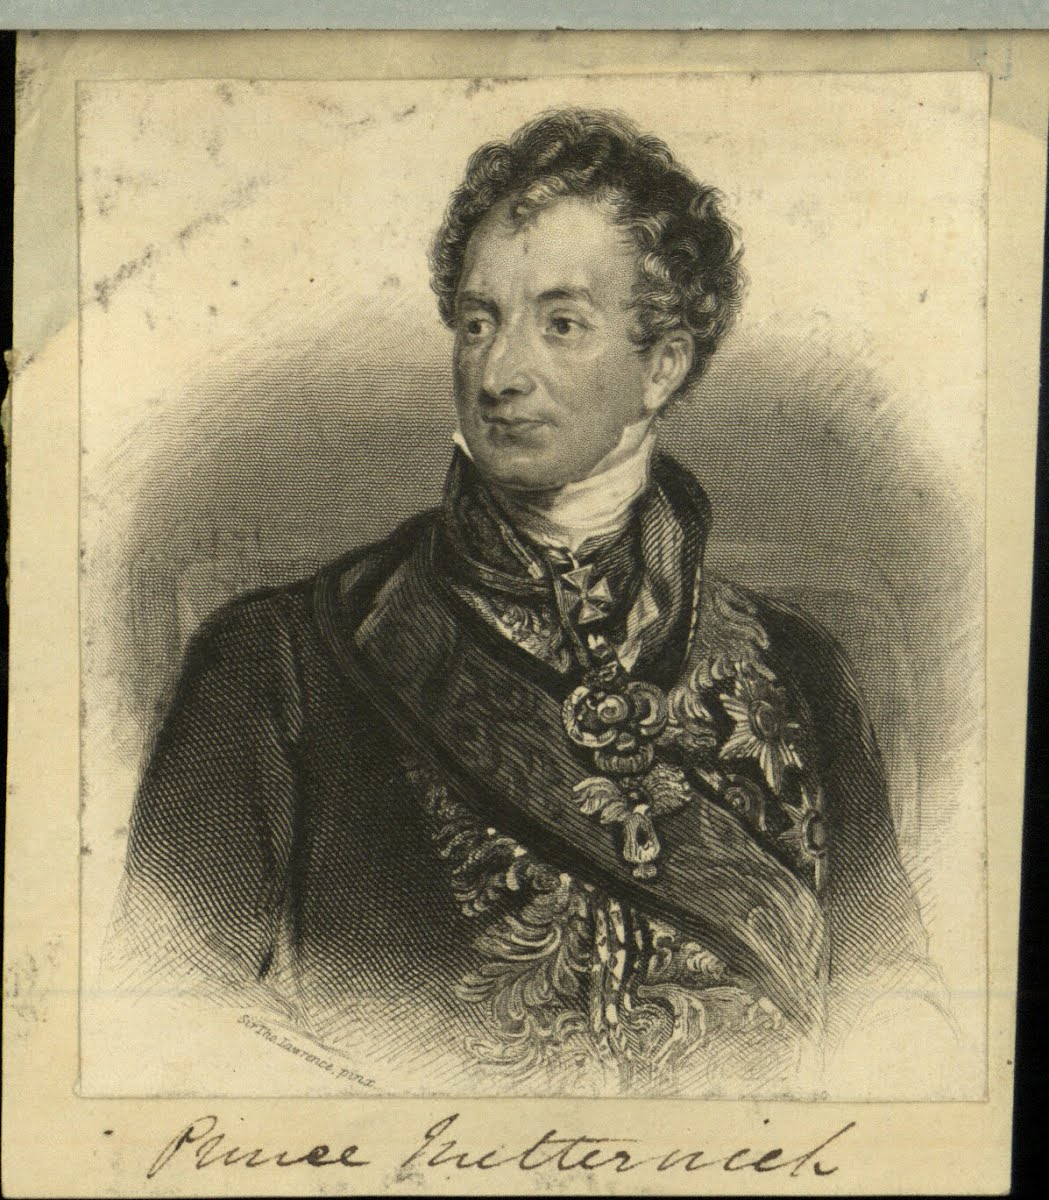 prince metternich Volume: 1 author: richard metternich category: europe length: 447 pages year: 1773.